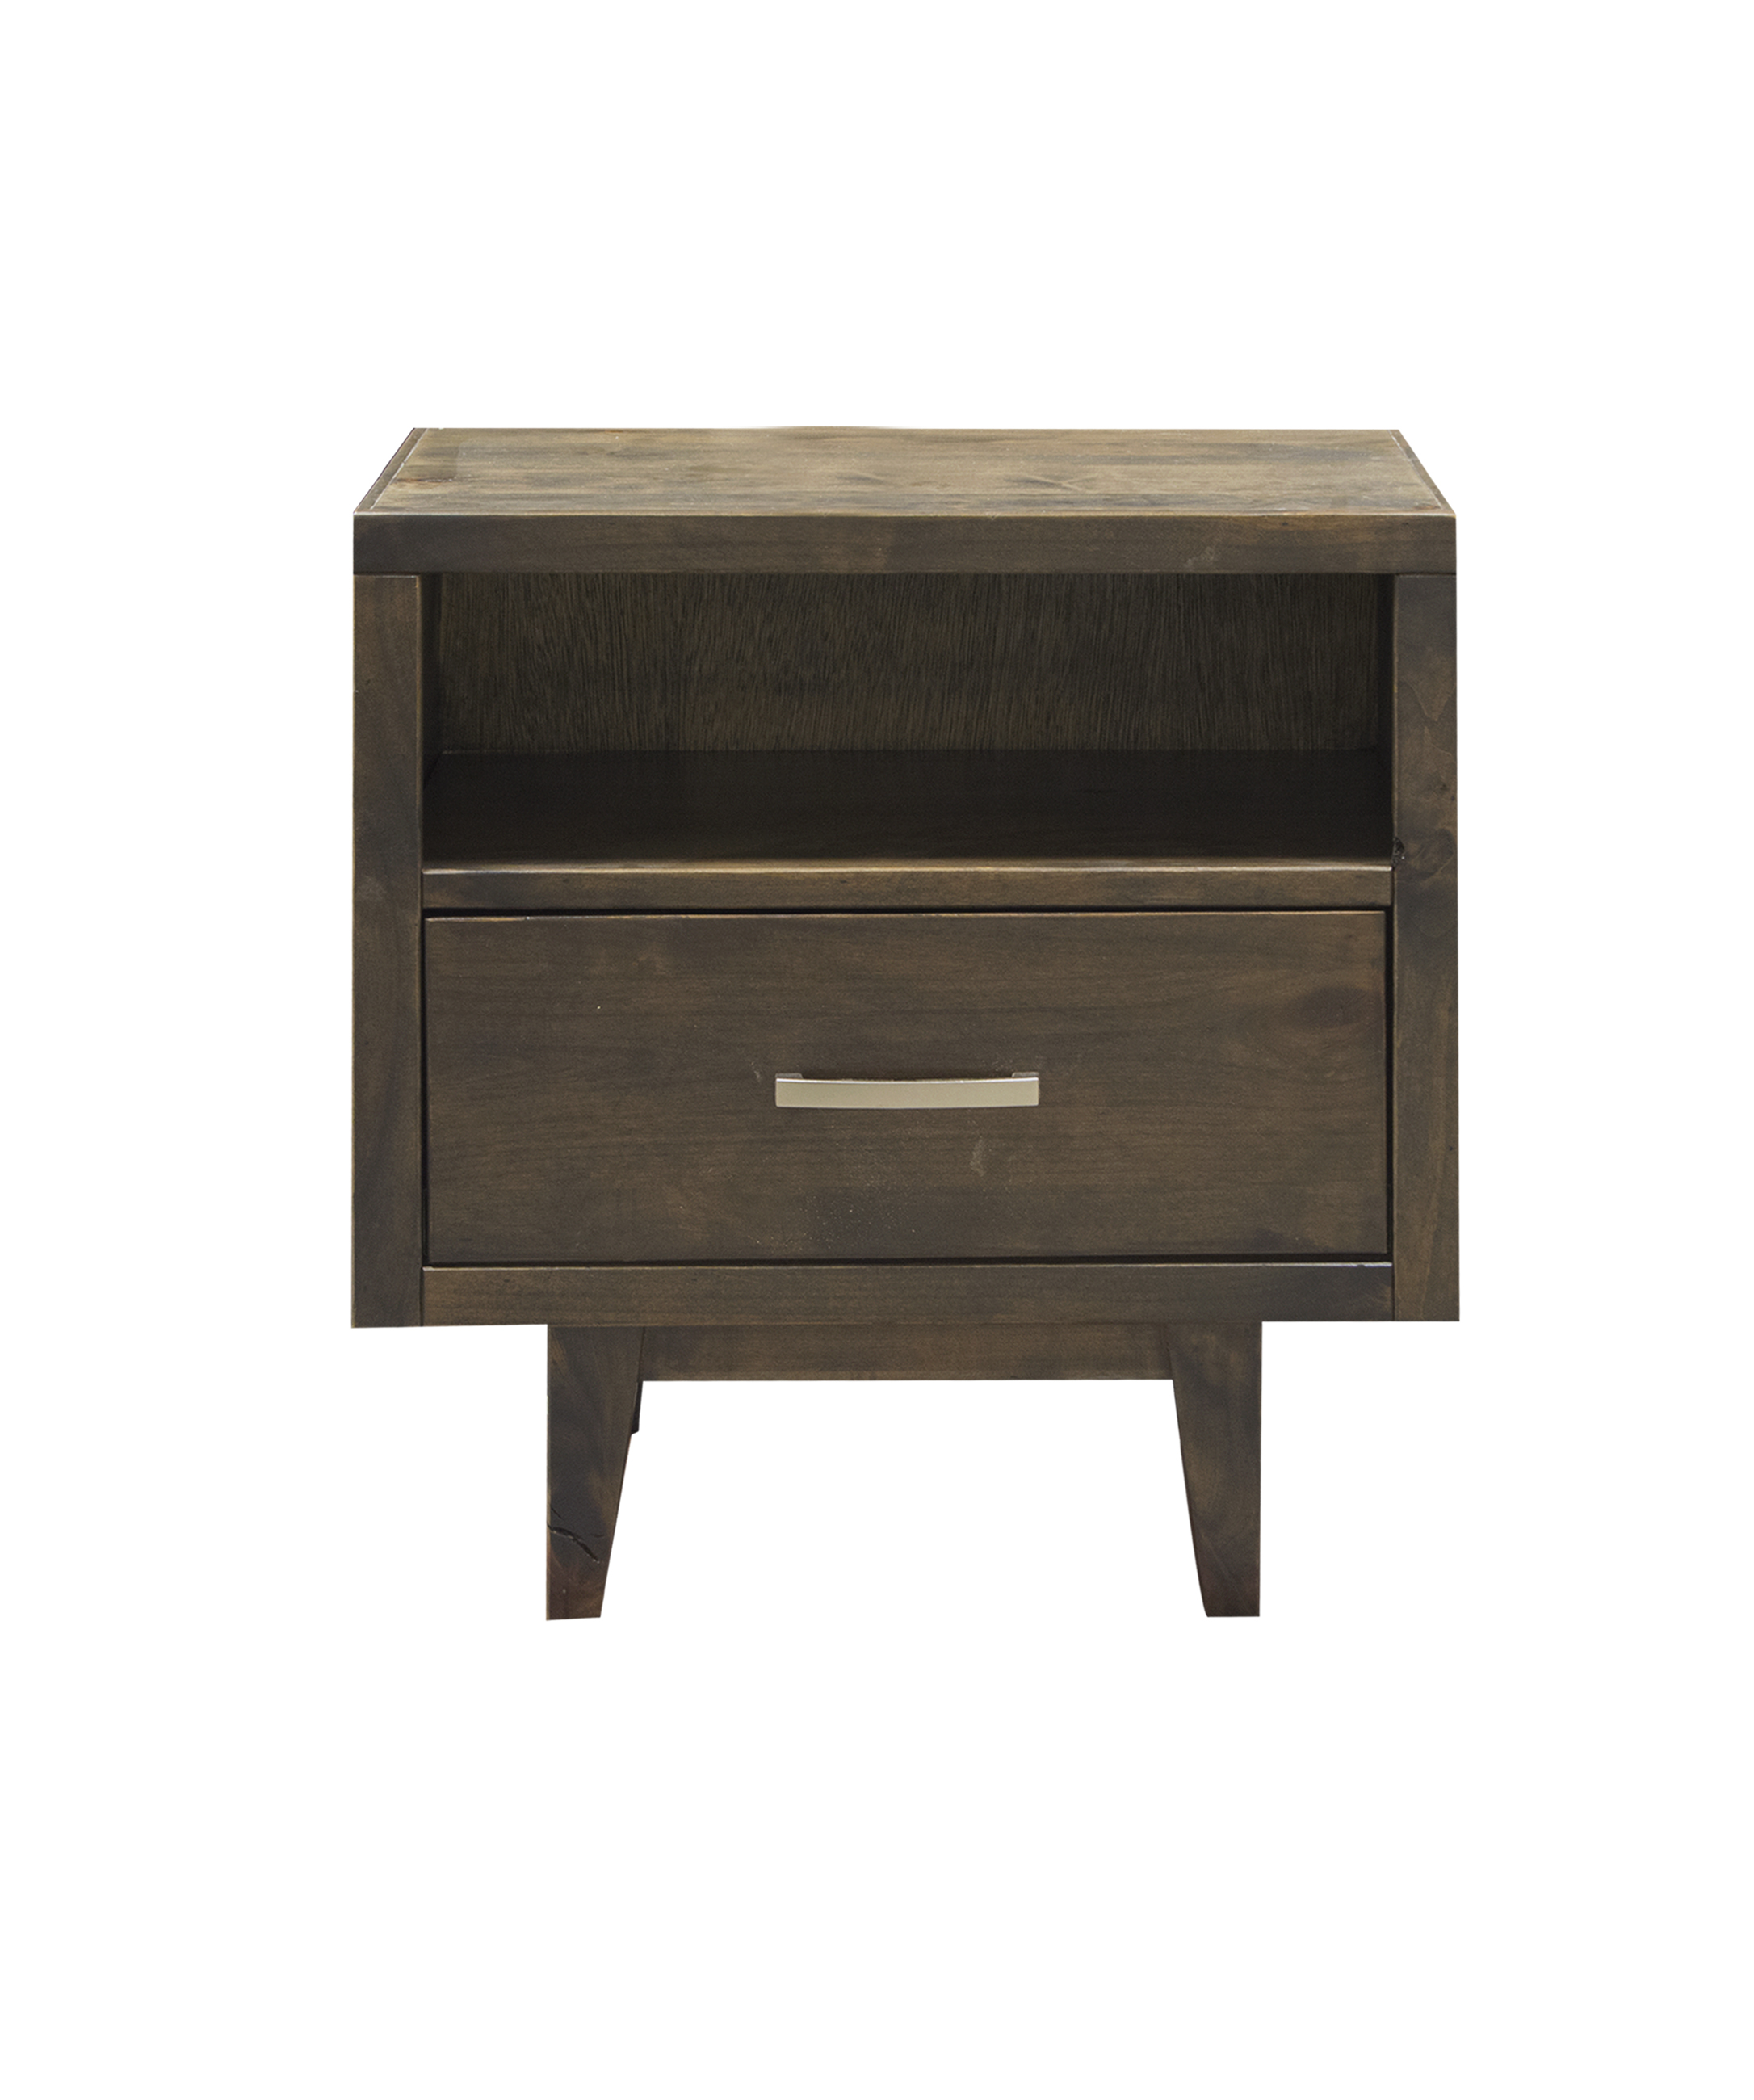 Legends Furniture Avondale One Drawer Nightstand - Item Number: AV7106-CHR